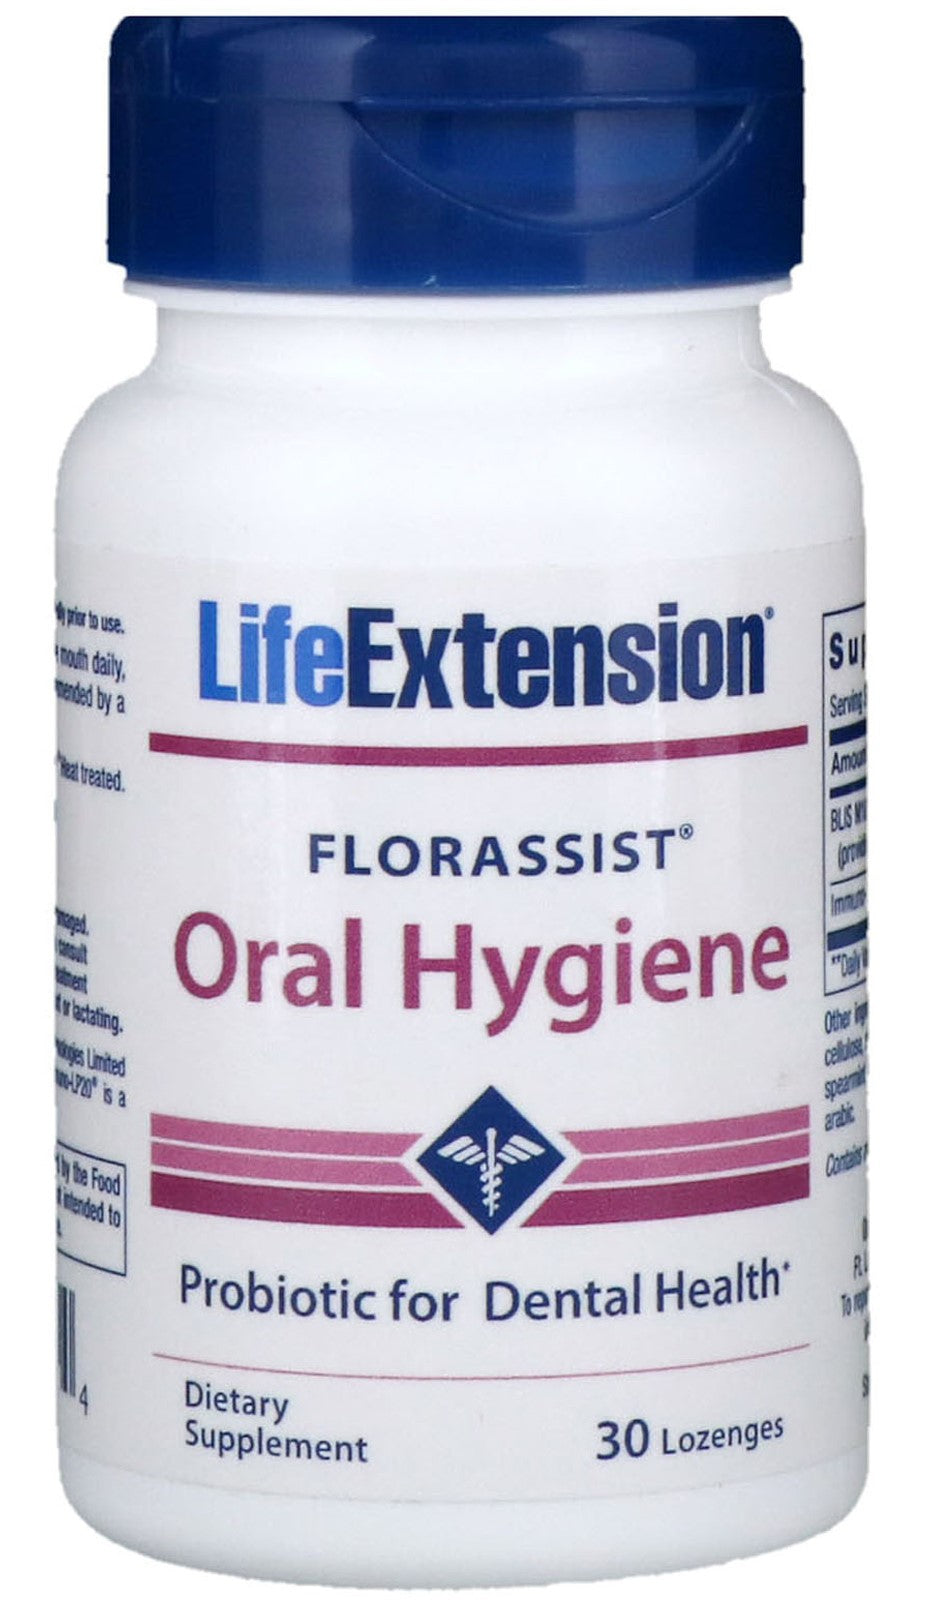 Florassist Oral Hygiene - 30 lozenges